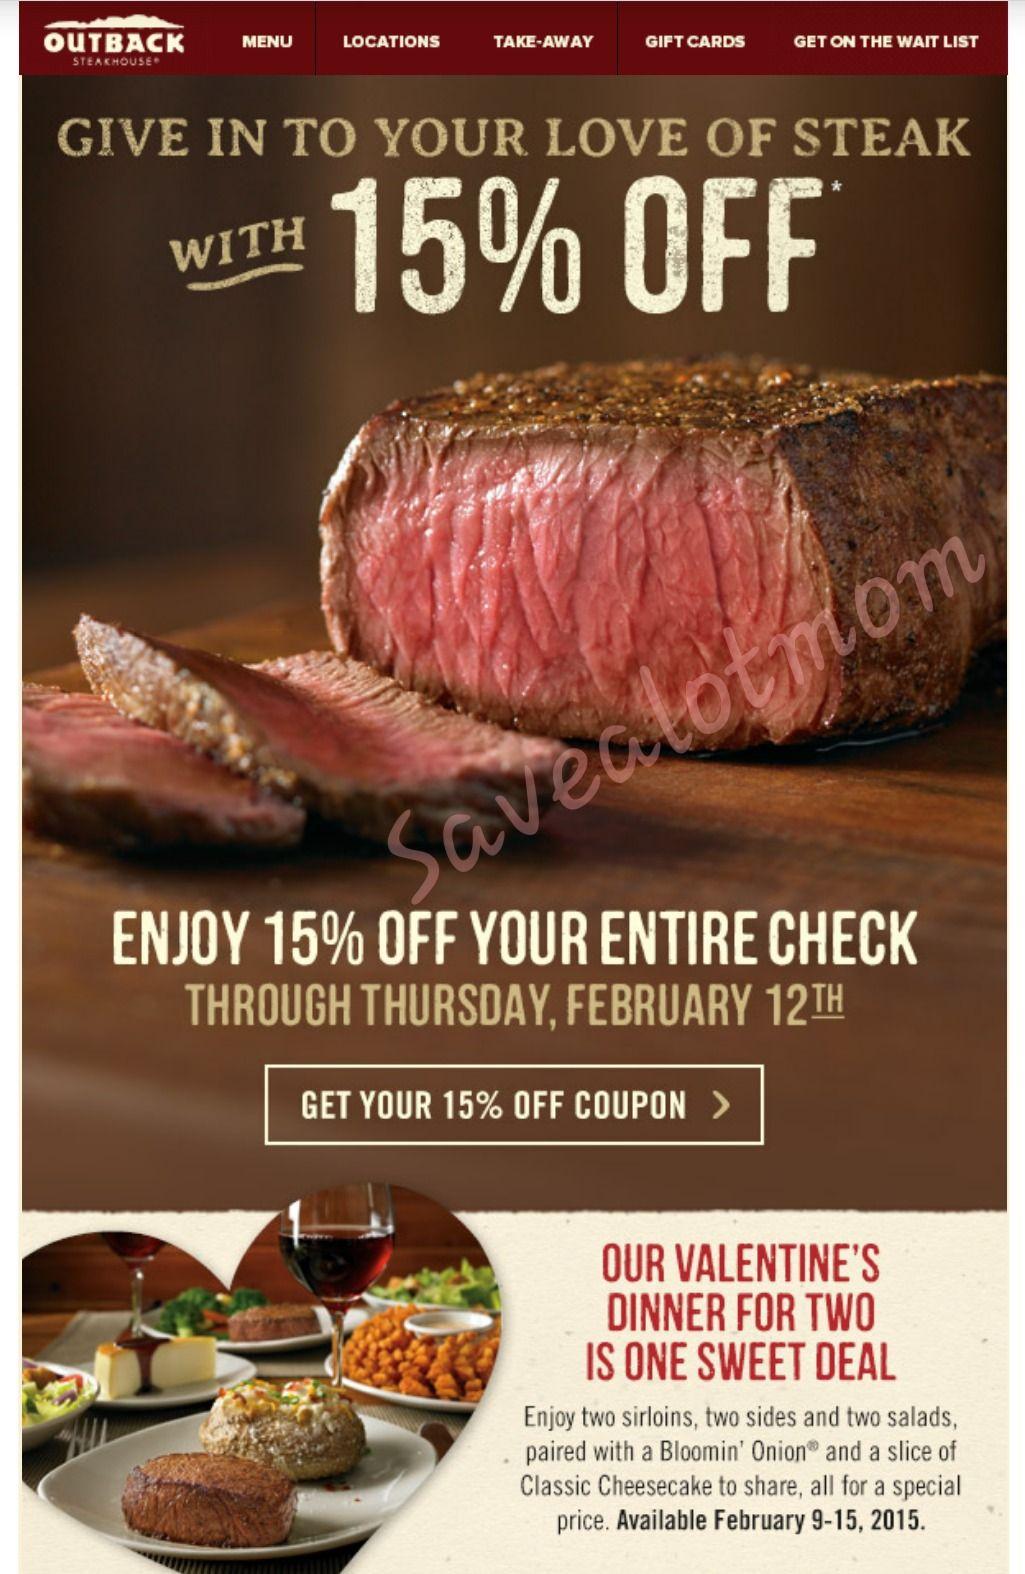 Outback 15% off Coupon